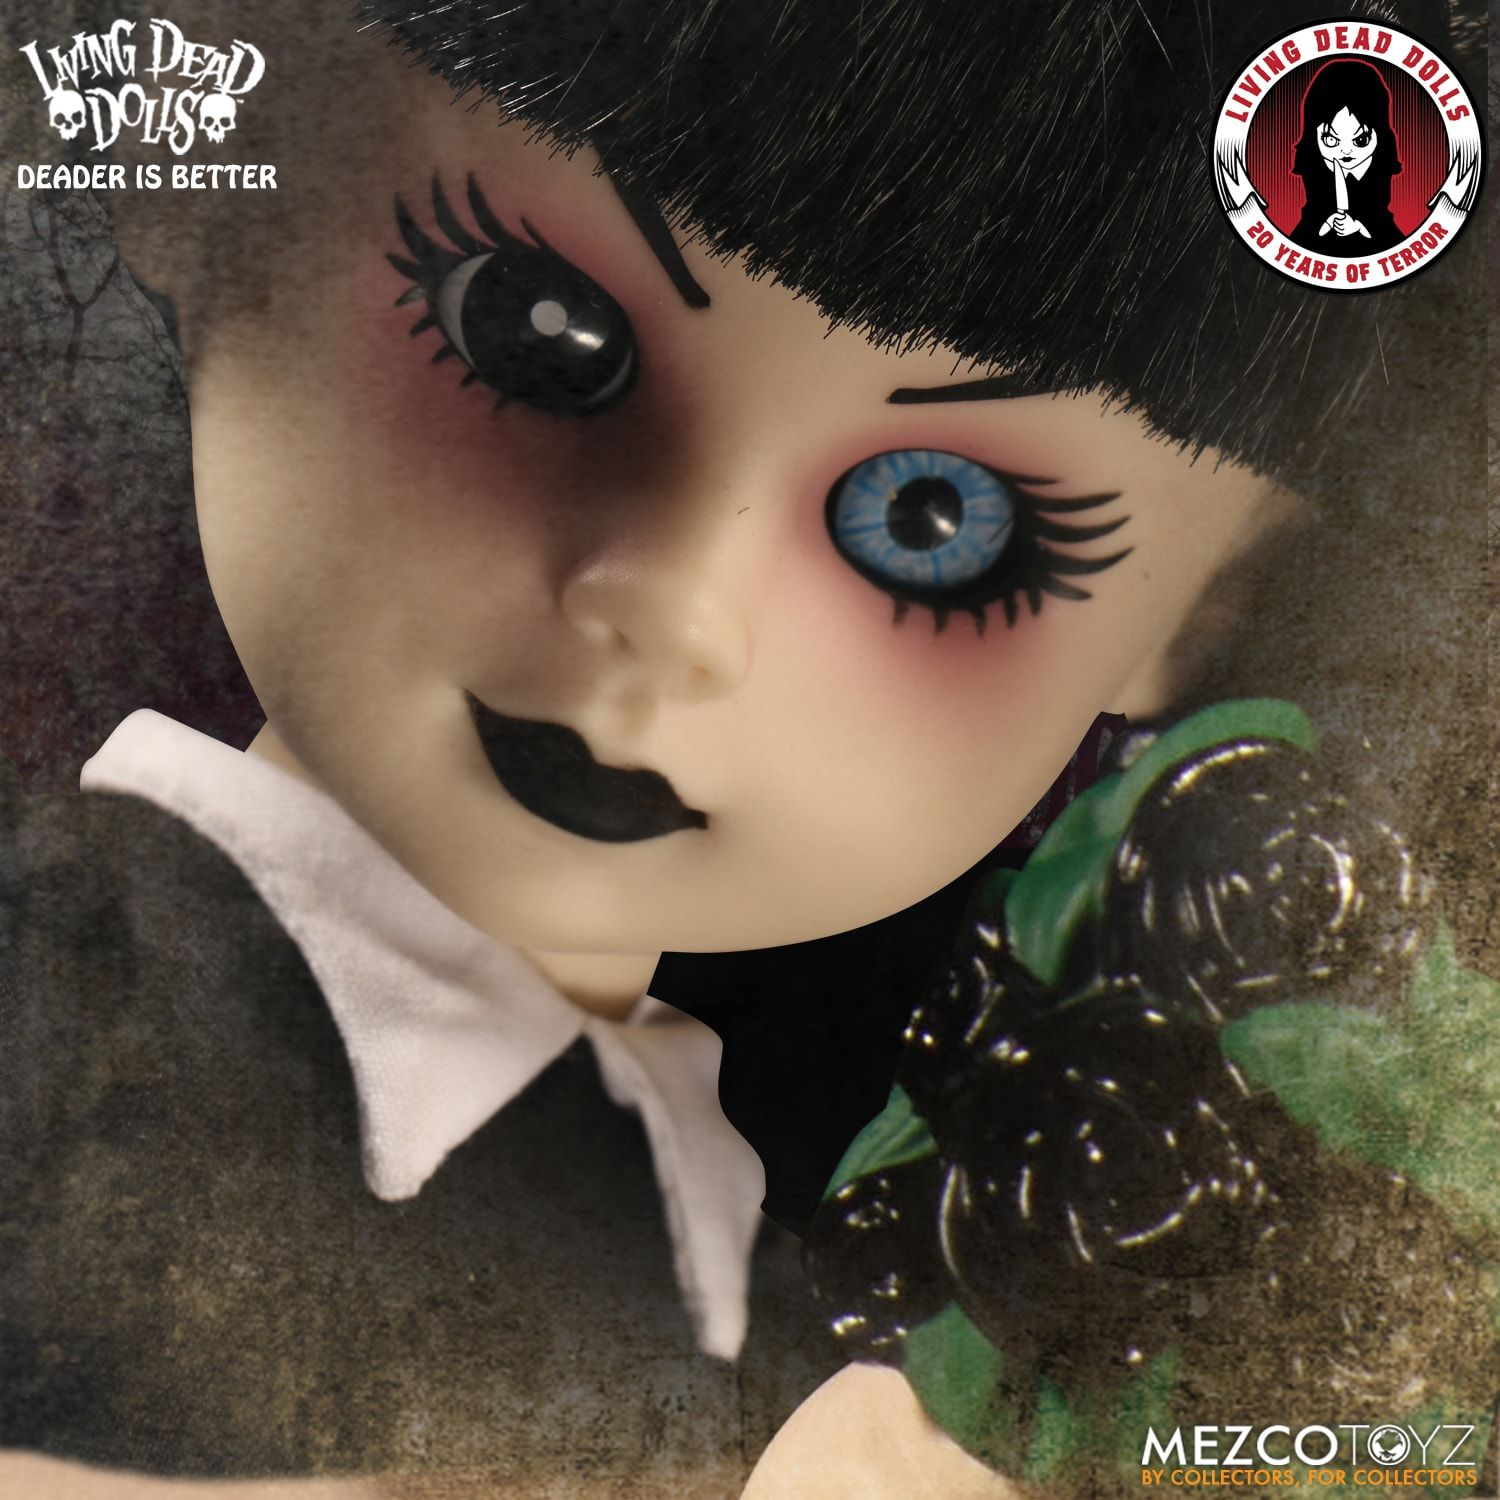 Mezco Living Dead Dolls 20th Anniversary Series Mystery Collection CANDY ROTTEN